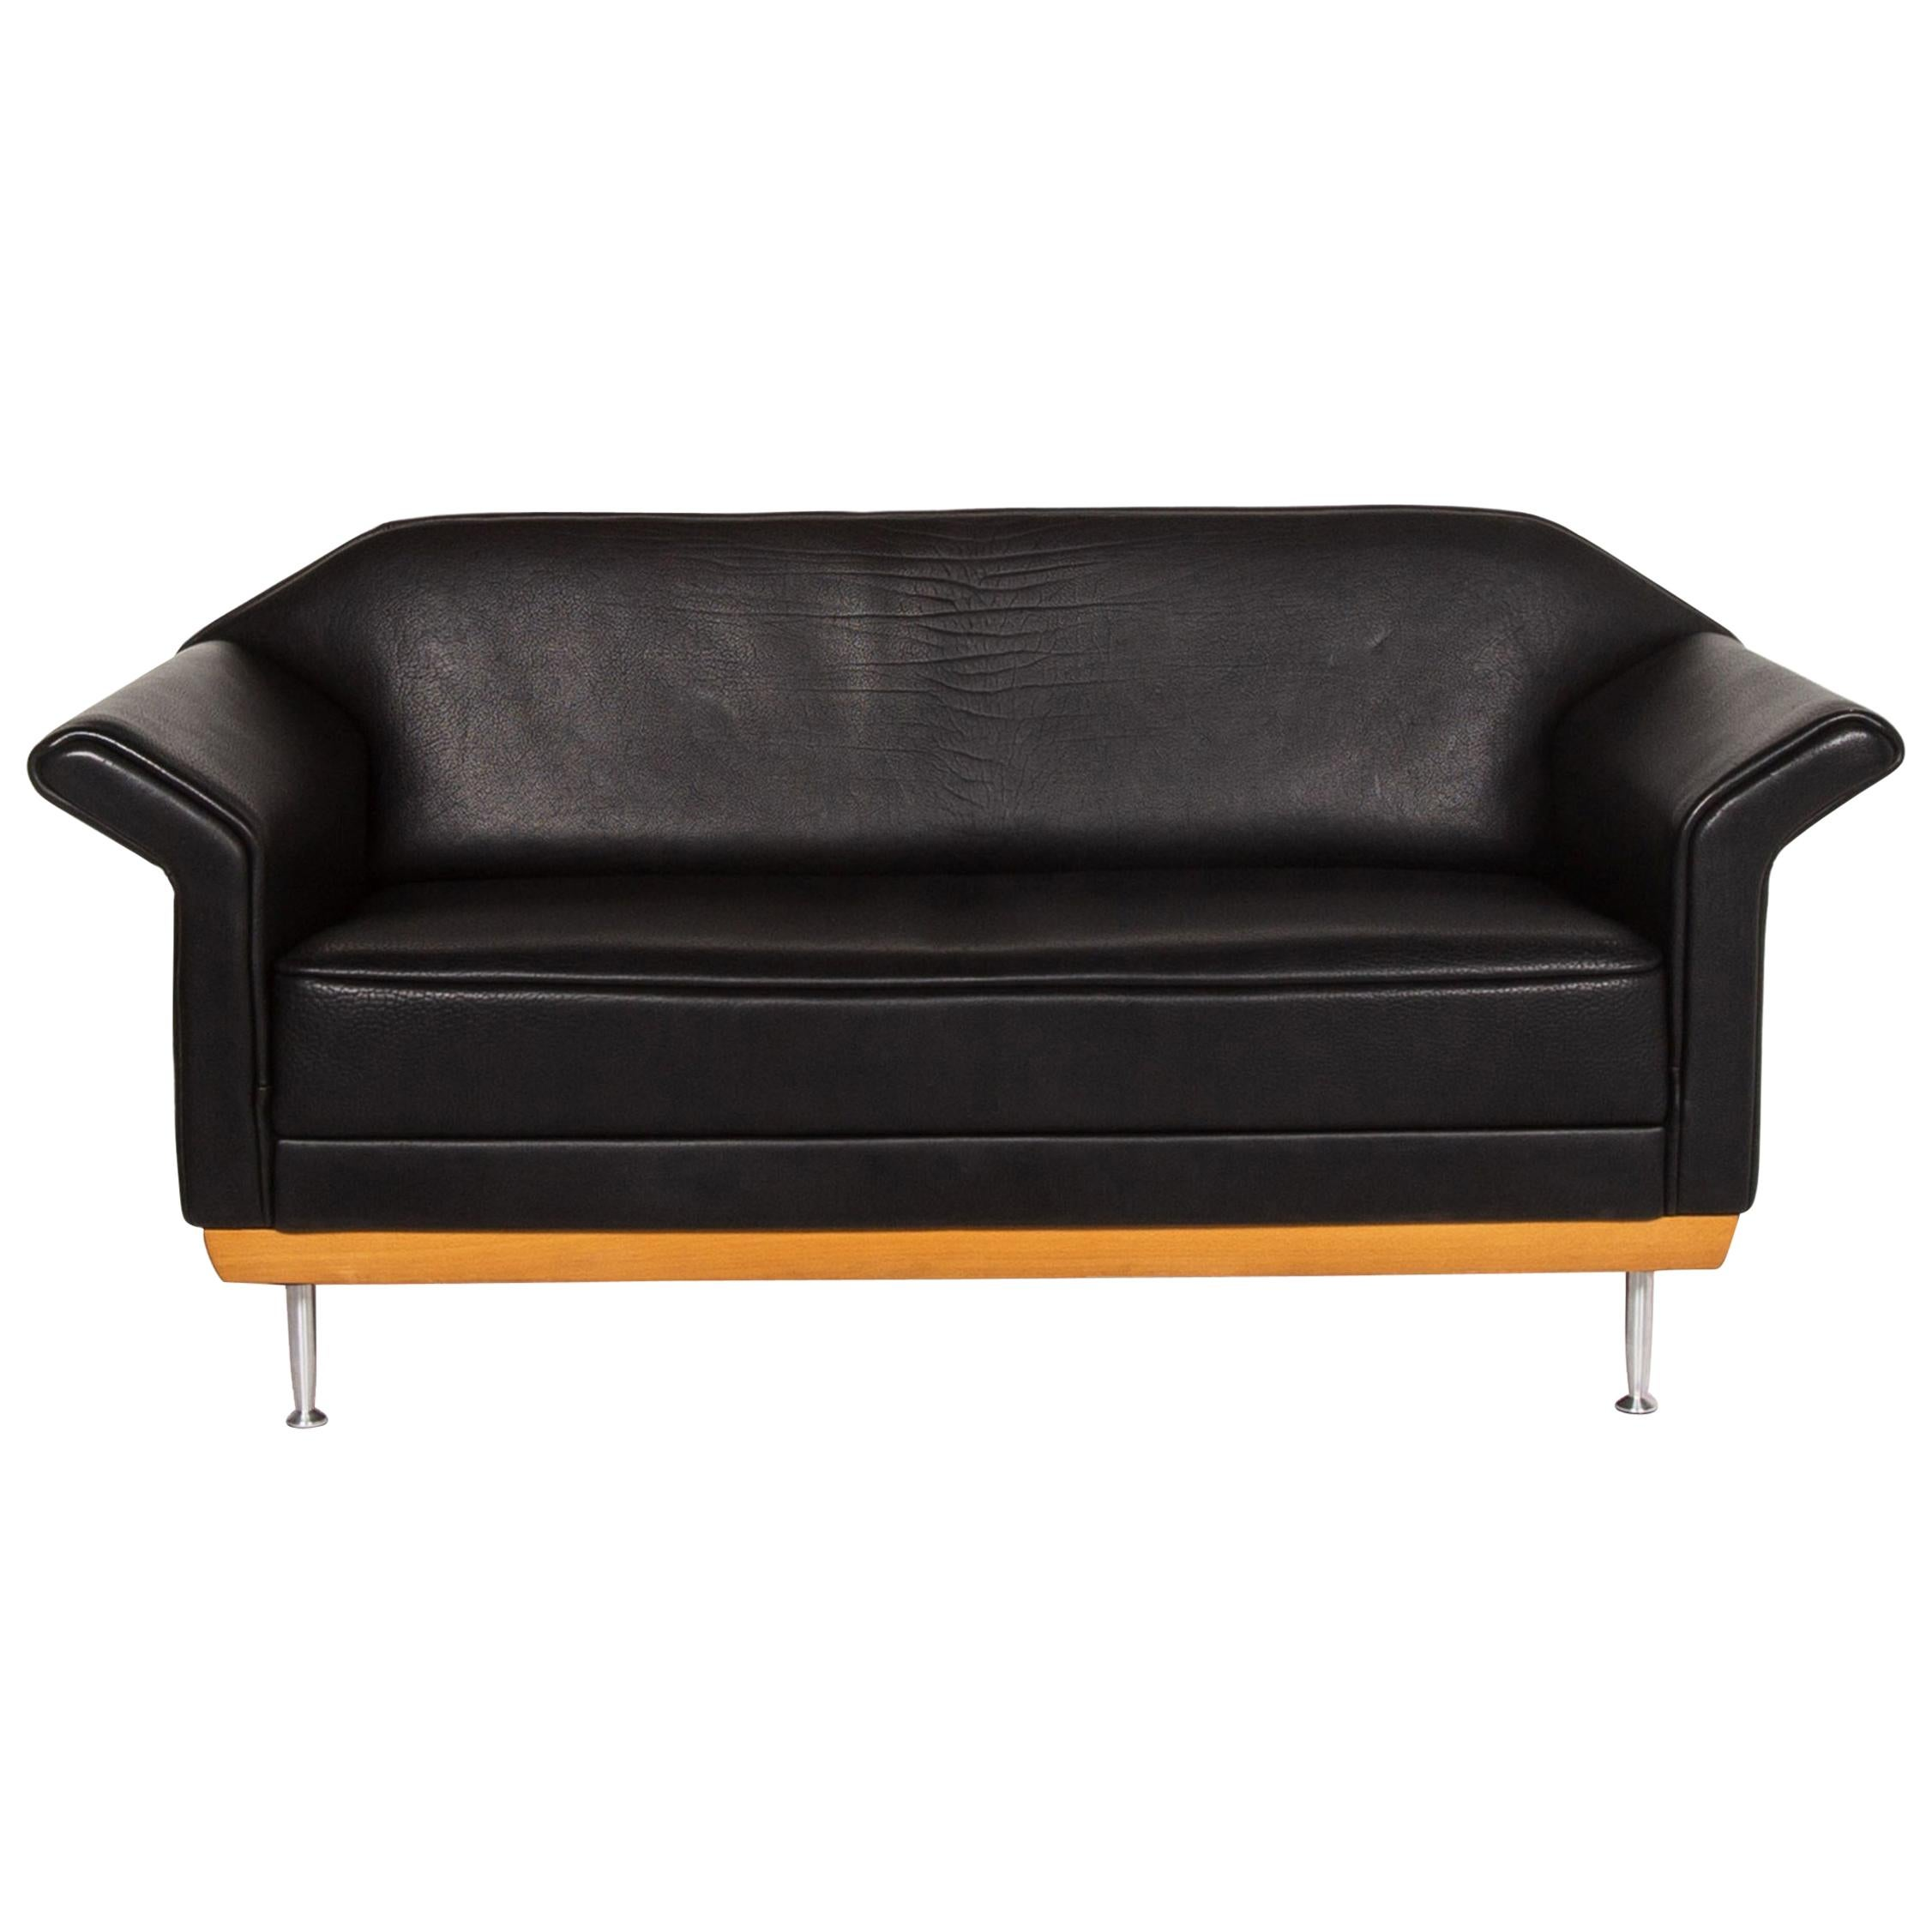 Brühl & Sippold Leather Sofa Black Two-Seat Couch